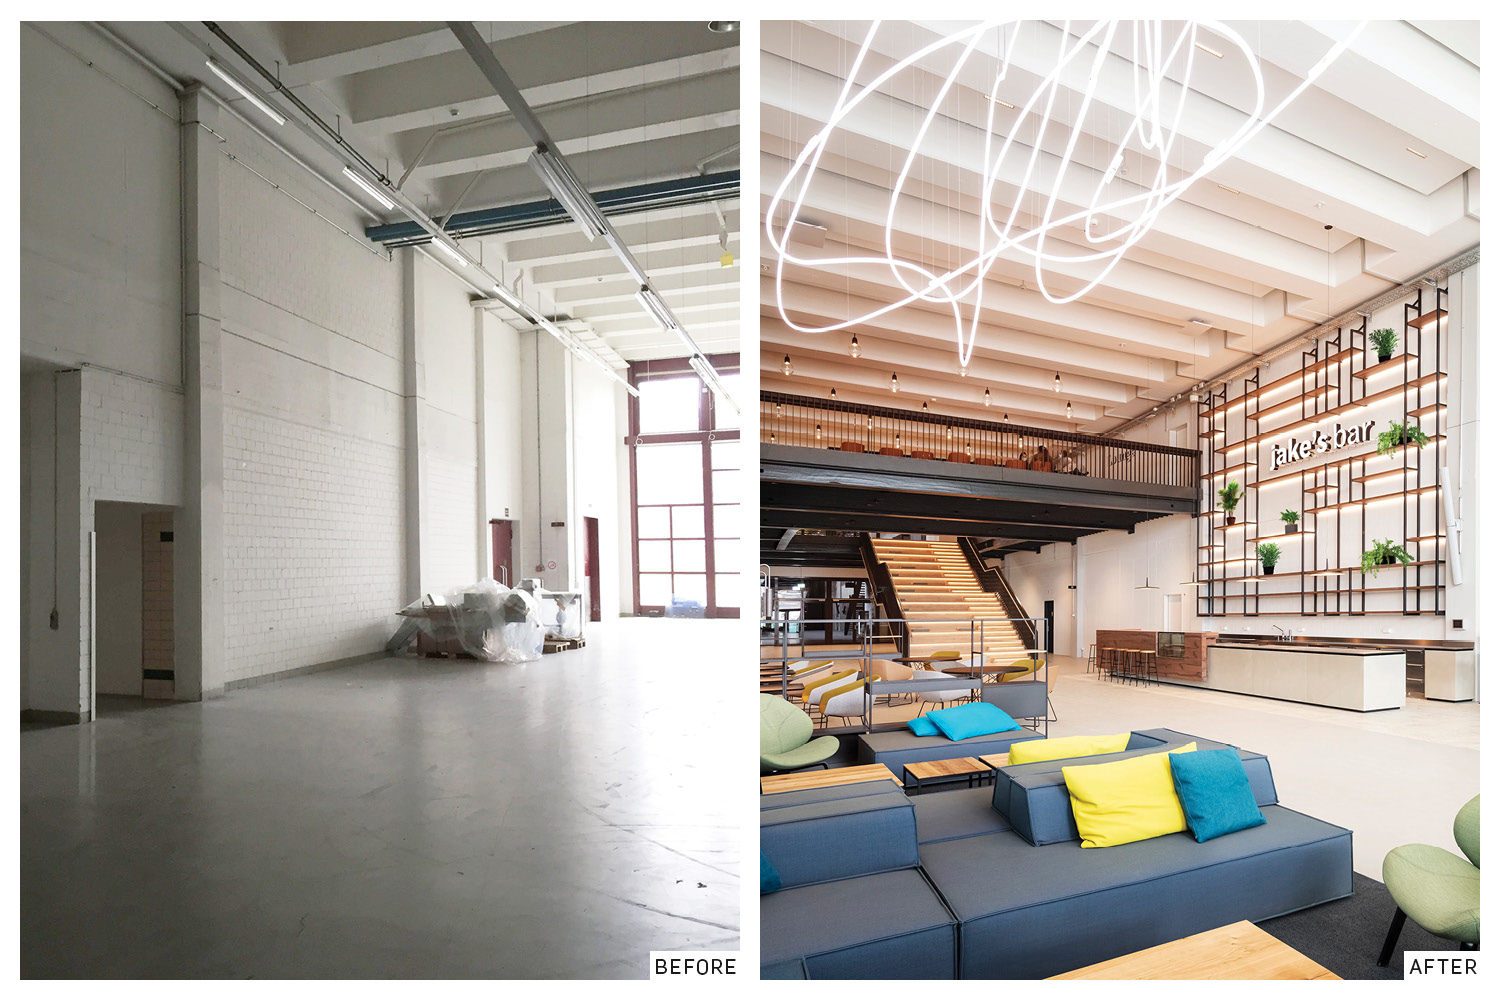 Distribution warehouse before and after the renovation. Evolution Design}